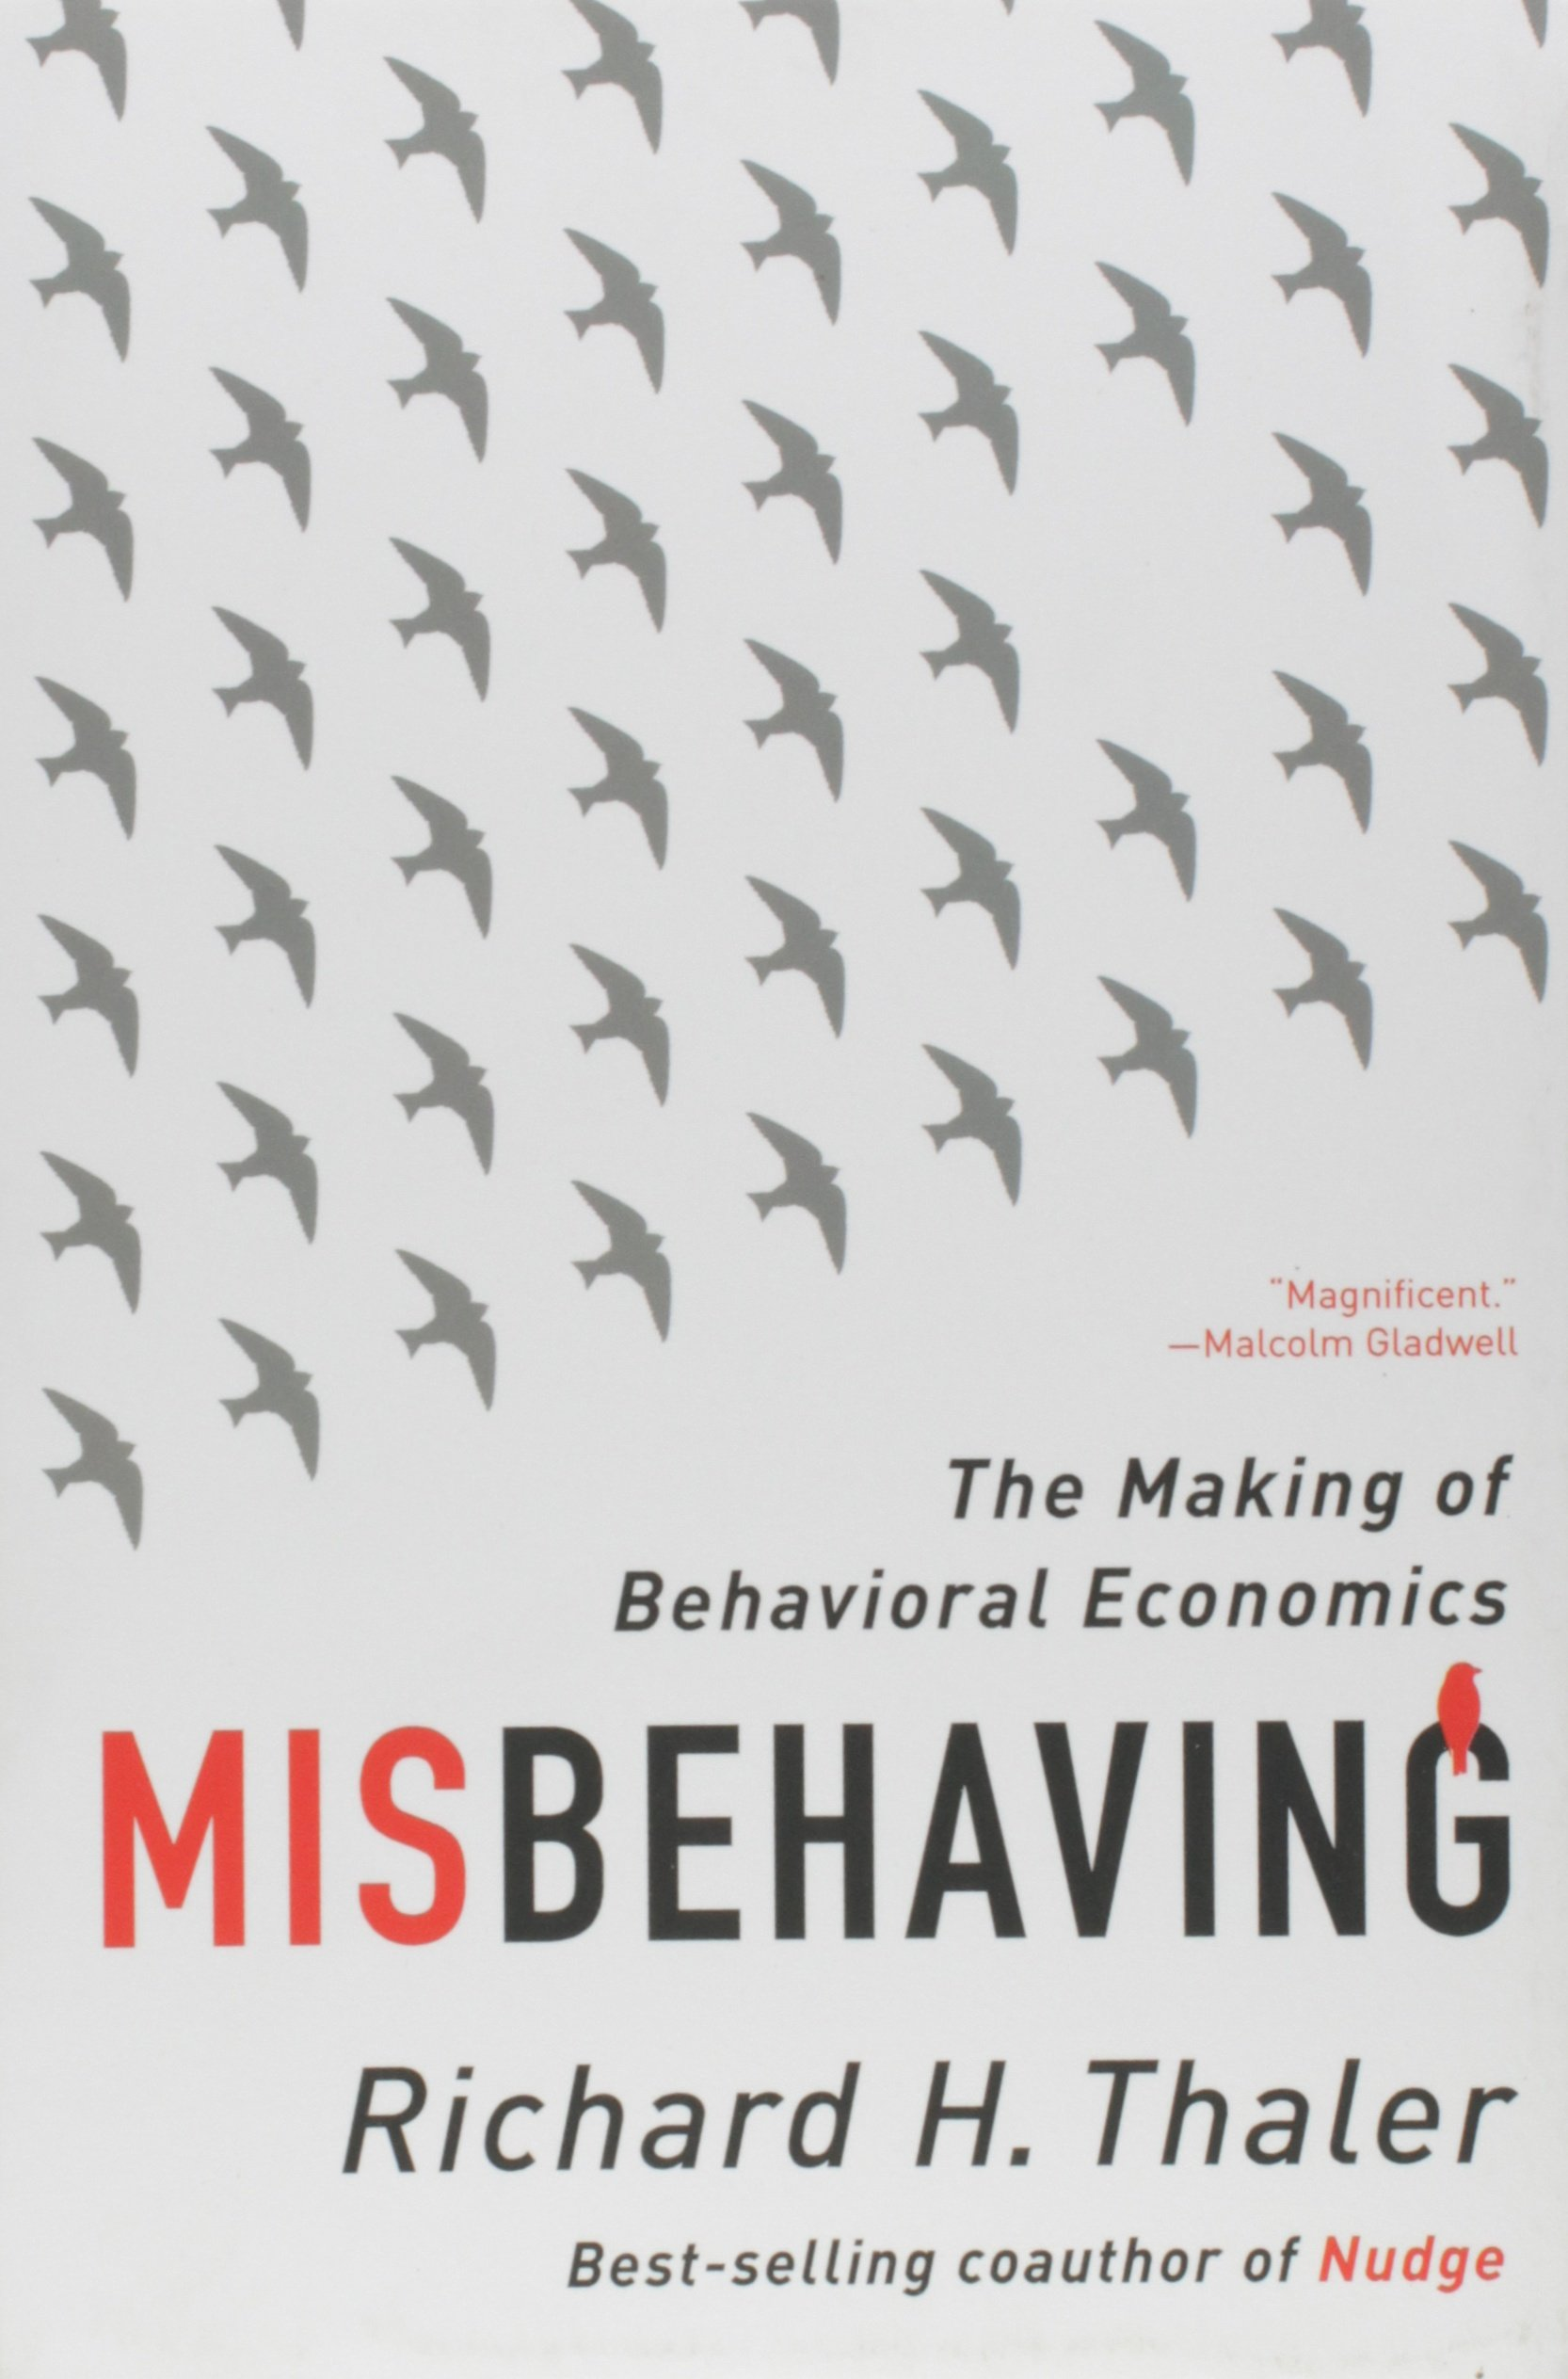 Misbehaving by Richard H. Thaler Book Cover